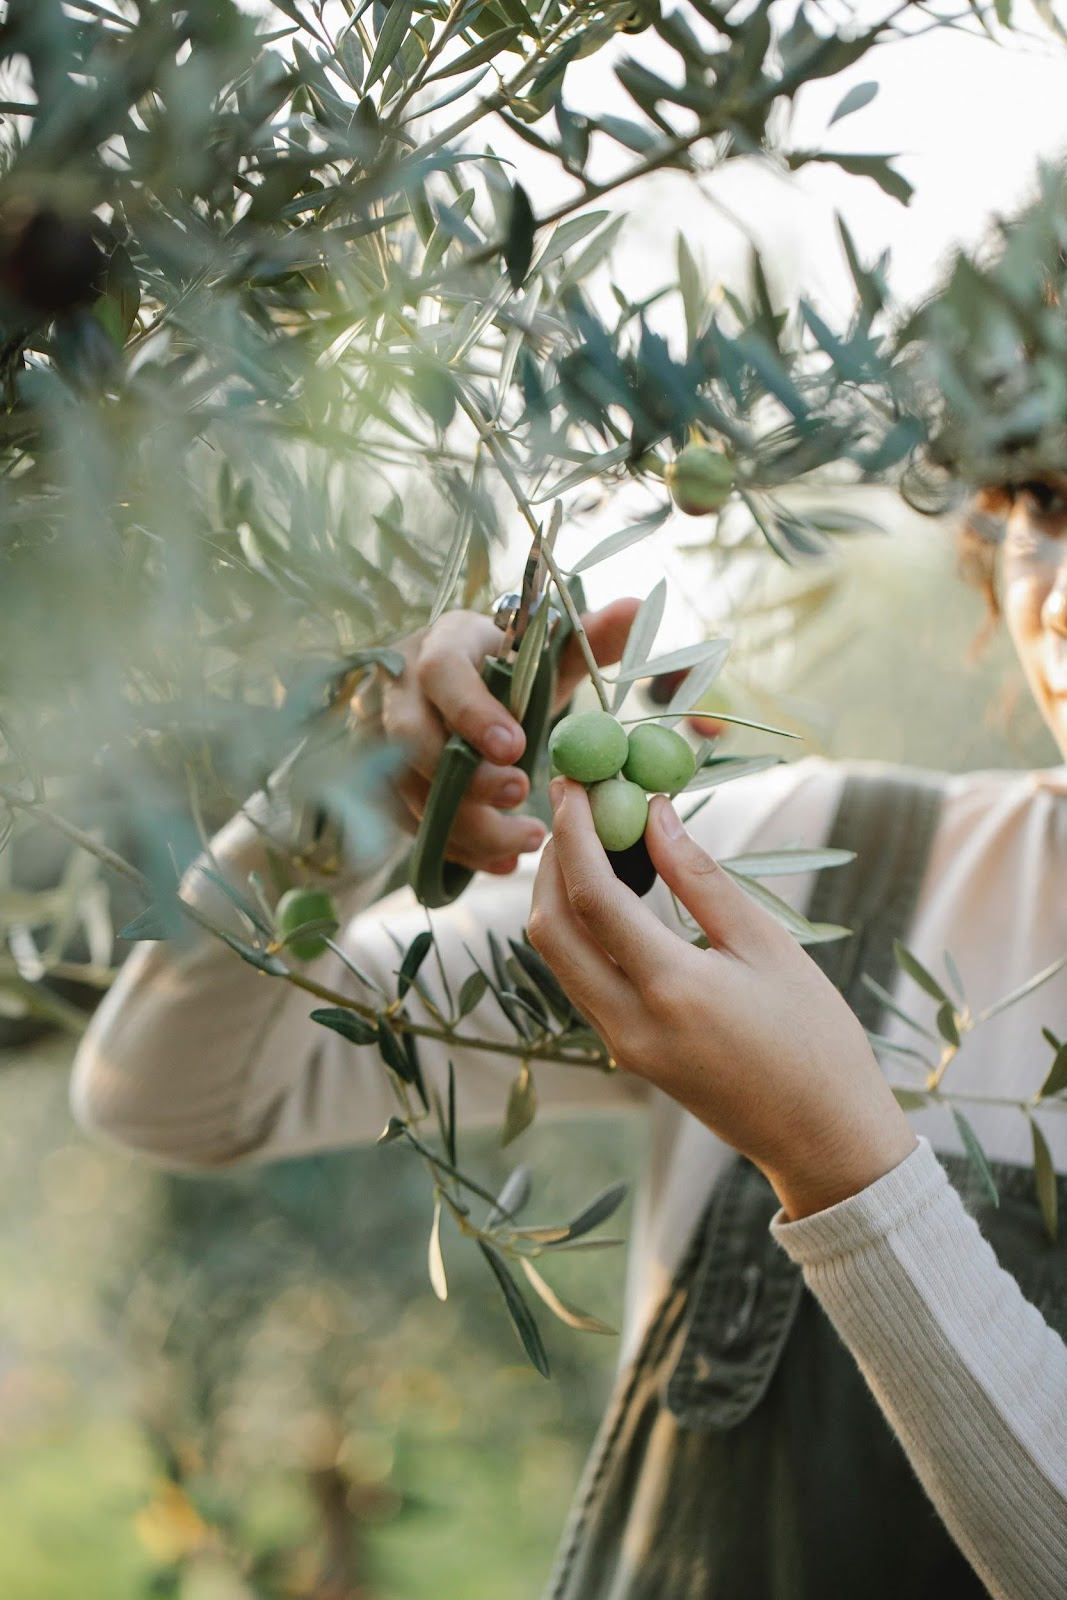 Texas Olive Oil: Answers To The Most-Asked Questions